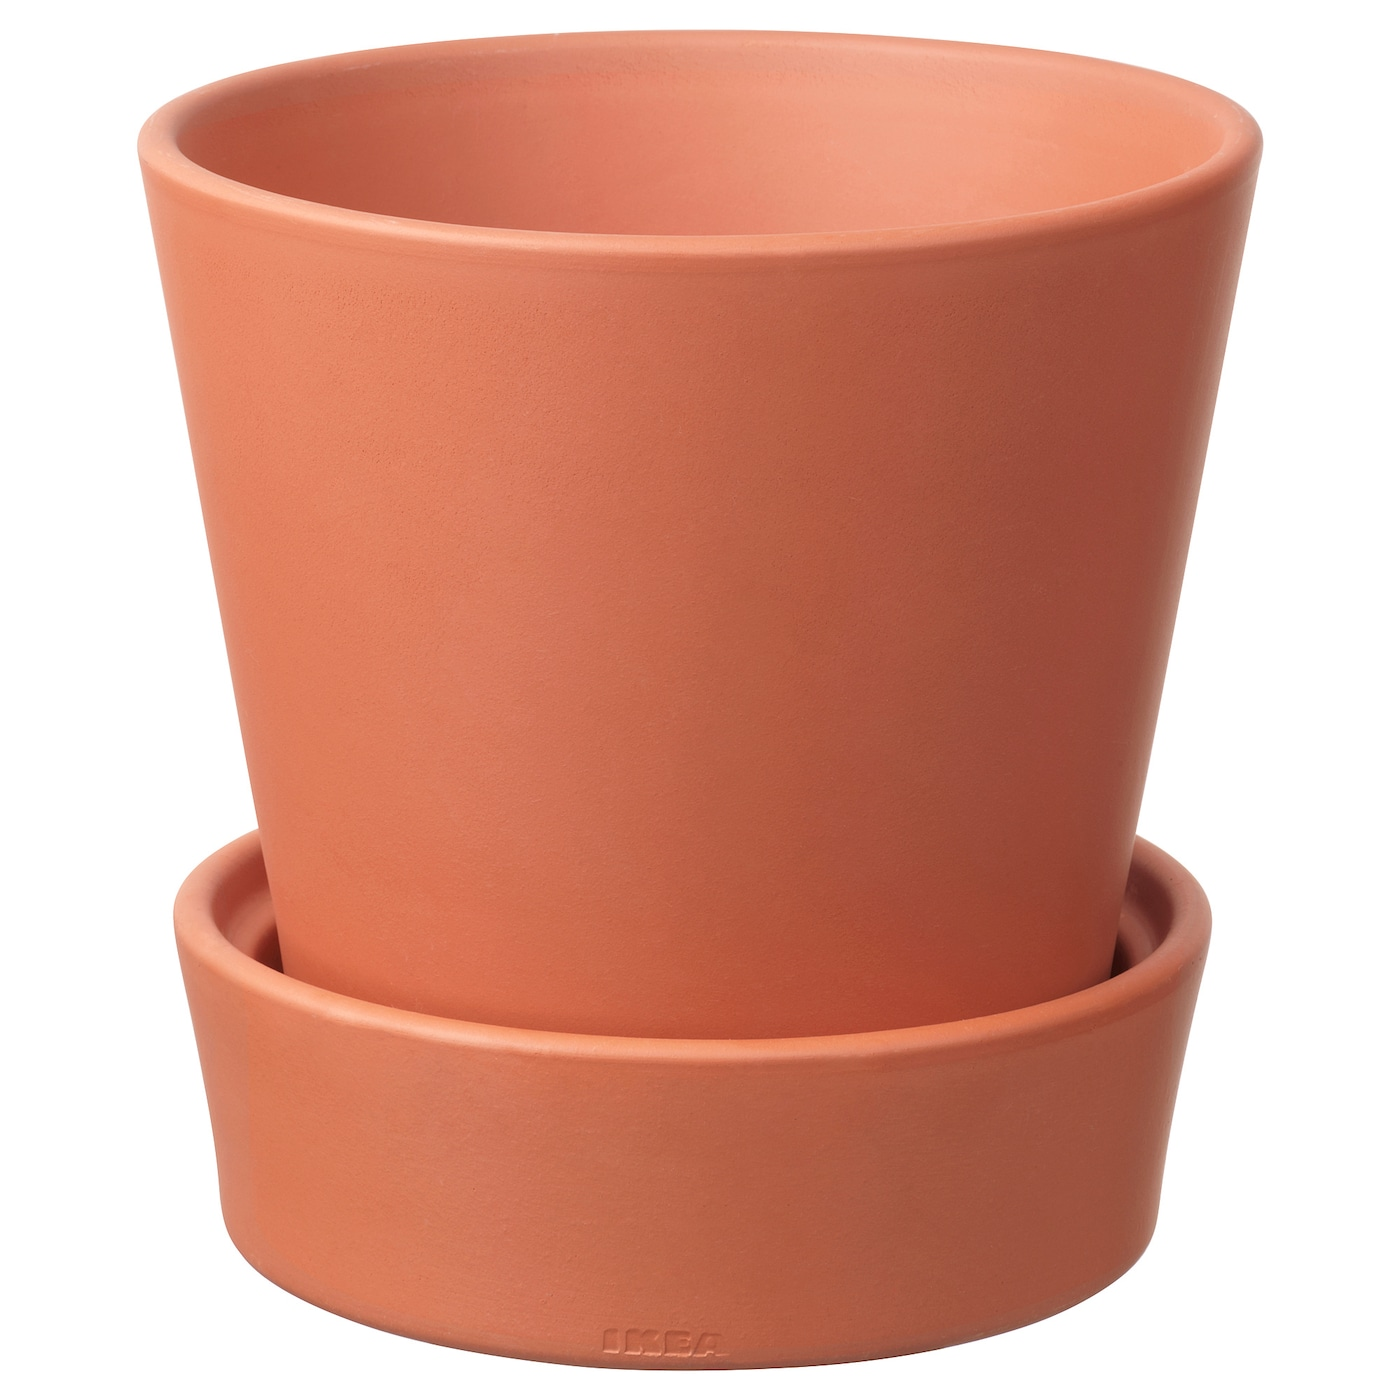 IKEA INGEFÄRA plant pot with saucer